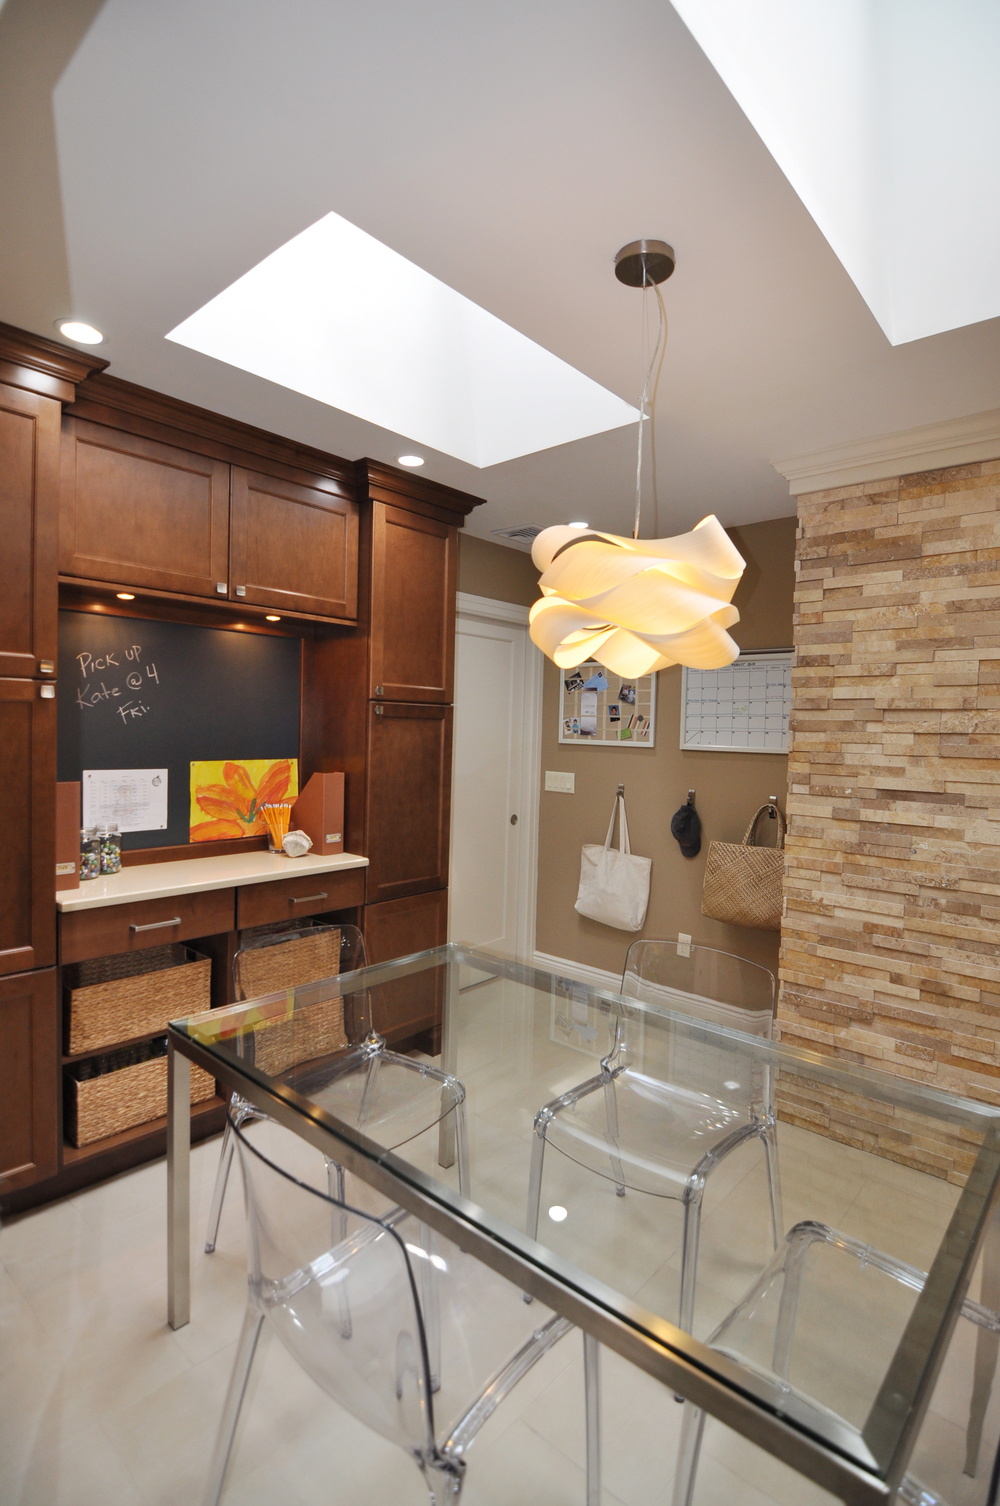 KAM DESIGN LLC_Kitchen Renovation_Interior Design_Cabinets_Stone Wall_Modern Kitchen_Modern Pendant_Acrylic Dining Chairs_Glass Kitchen Table_Kids Organization Area_Storage.jpg